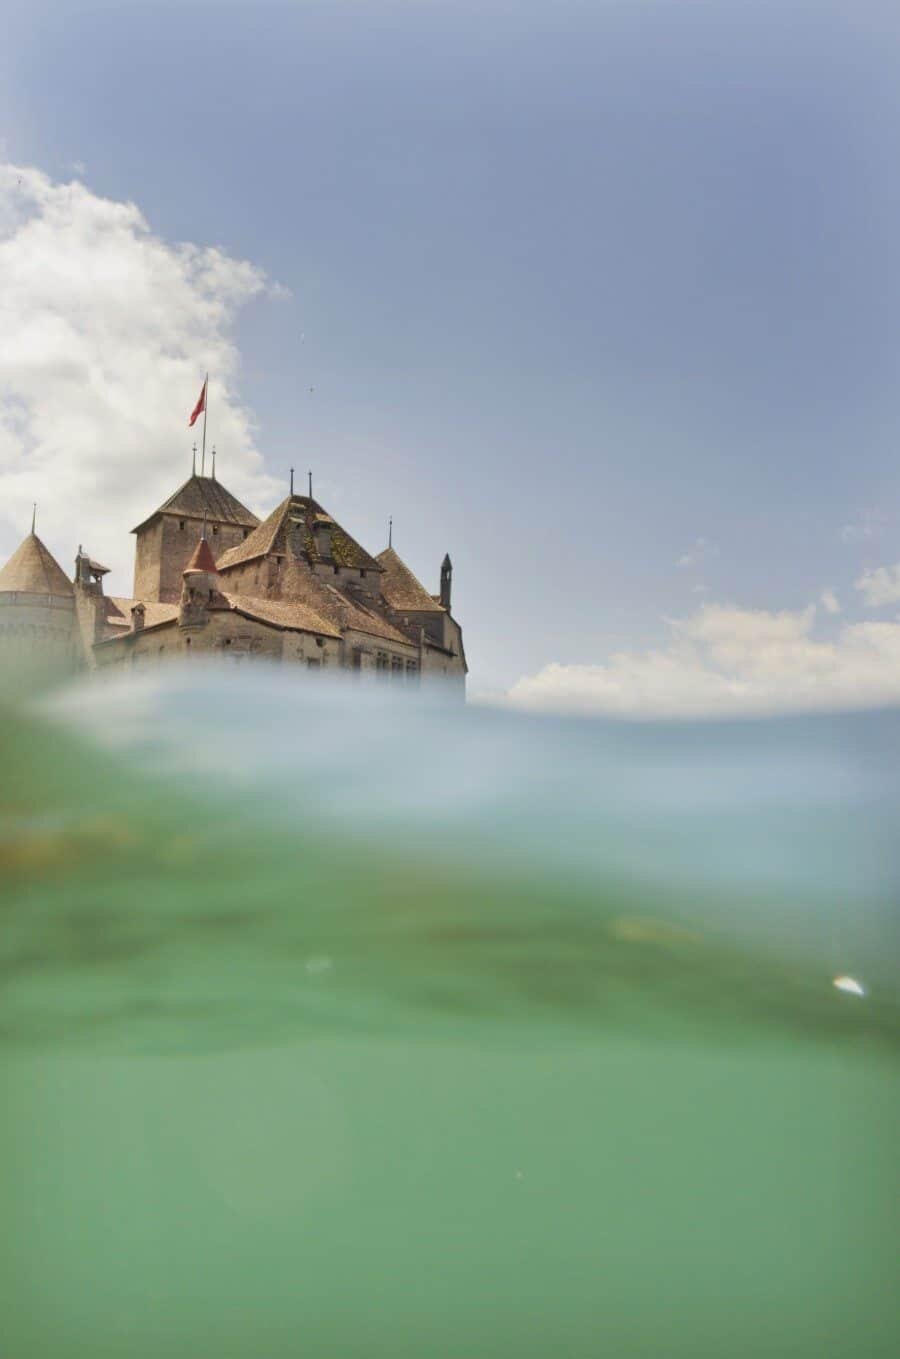 Chateau de Chillon, Switzerland tourism by The Wandering Lens